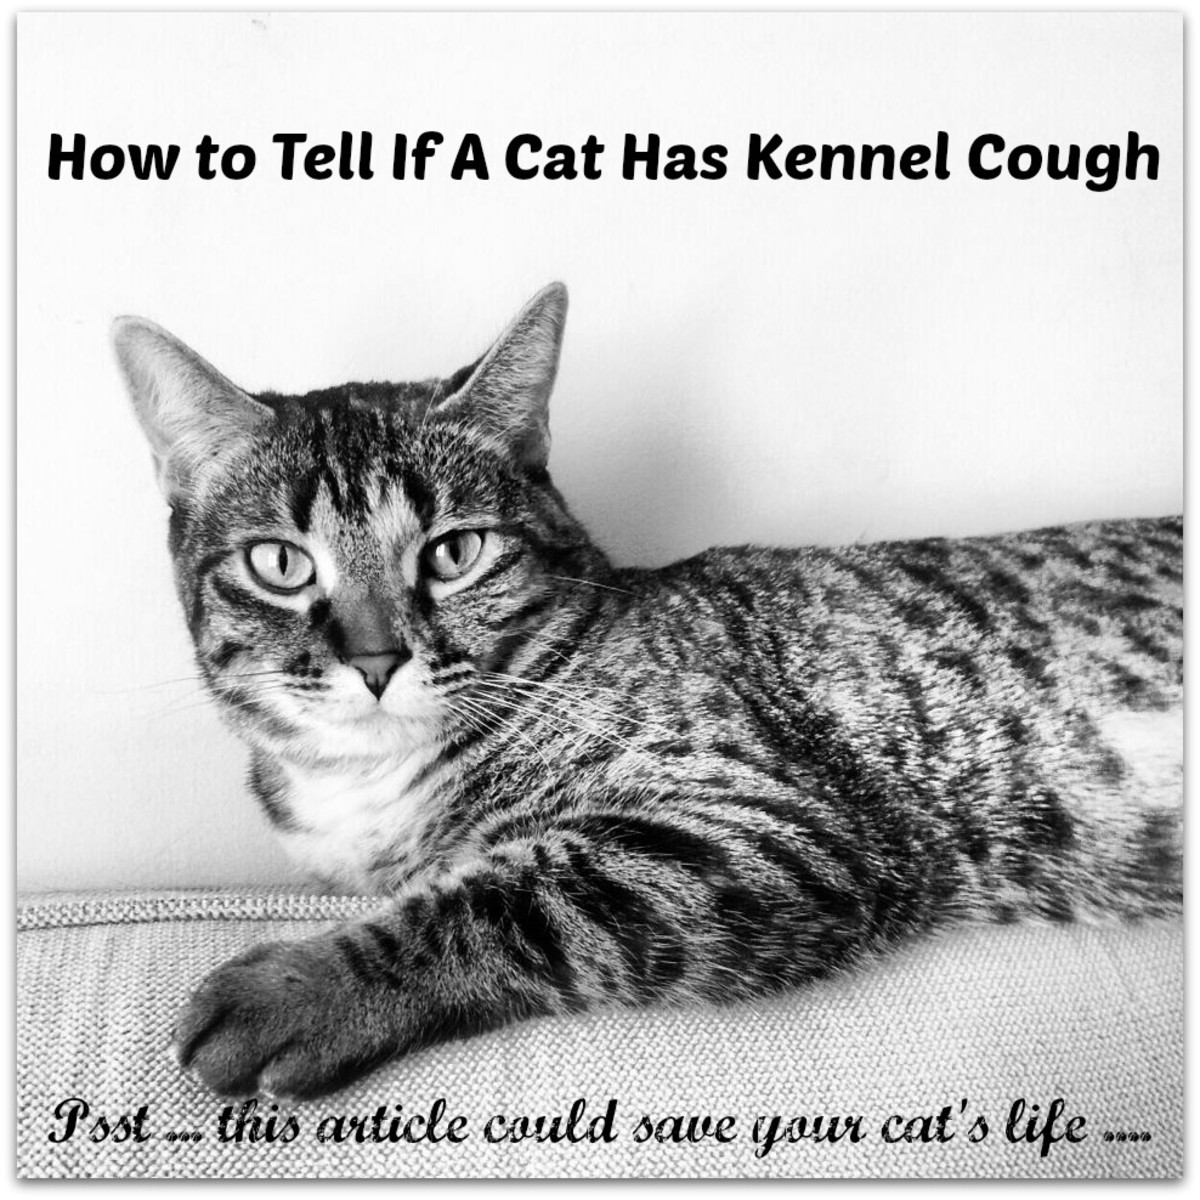 Kennel Cough Symptoms in Cats